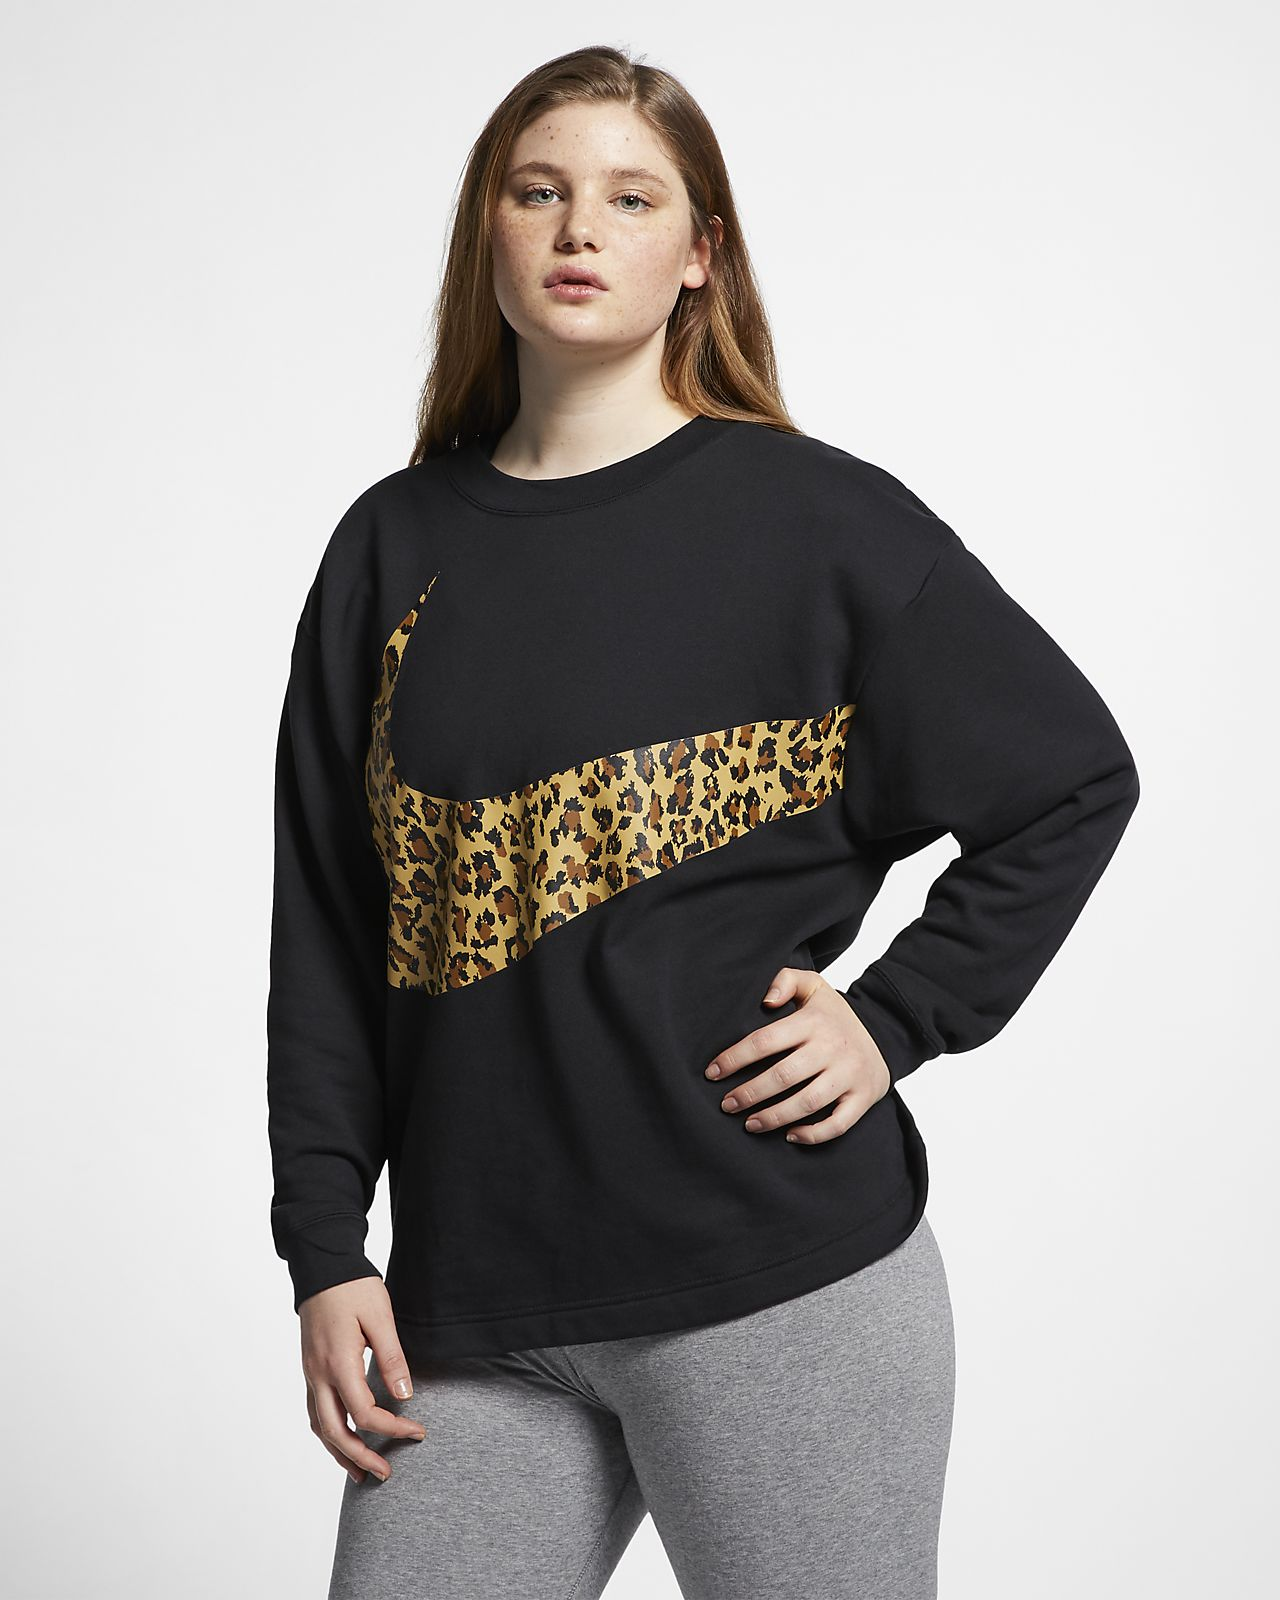 Nike Sportswear Women's Animal Crew (Plus Size)